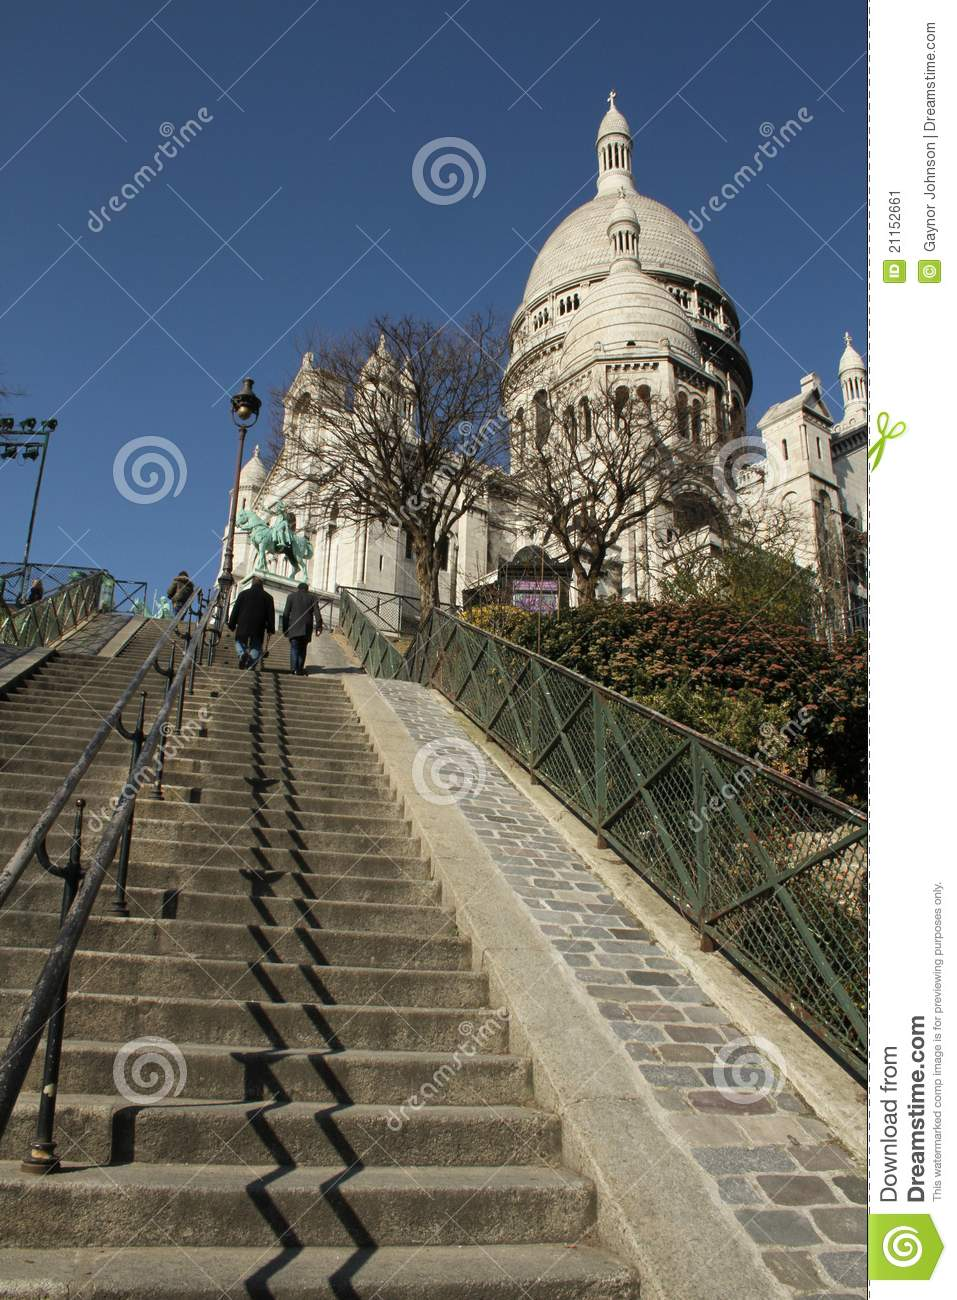 Sacre Coeur Cathedral and steps